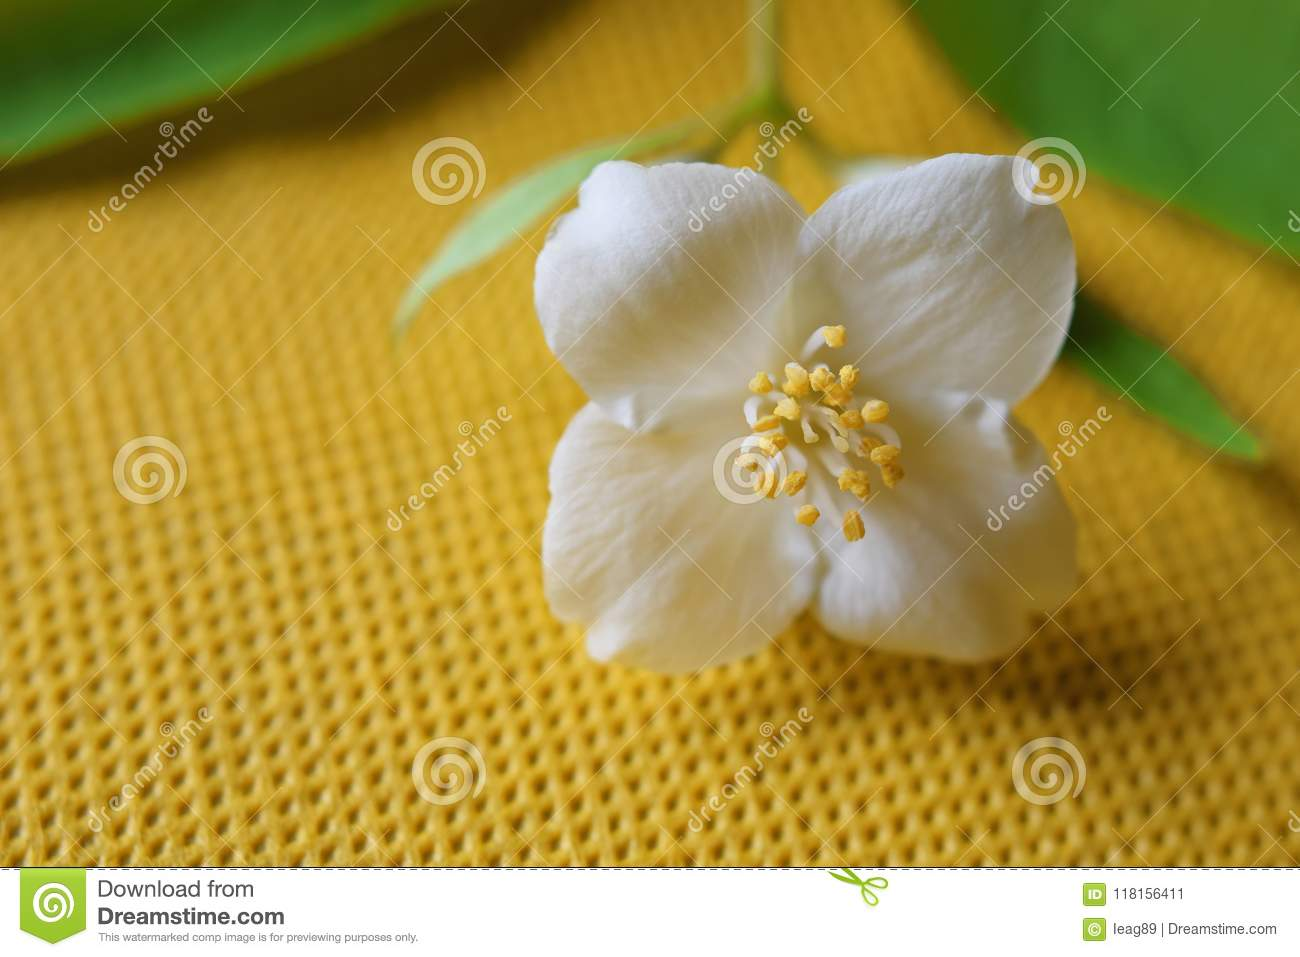 Philadelphus With One Flower Stock Image Image Of Green Blurred